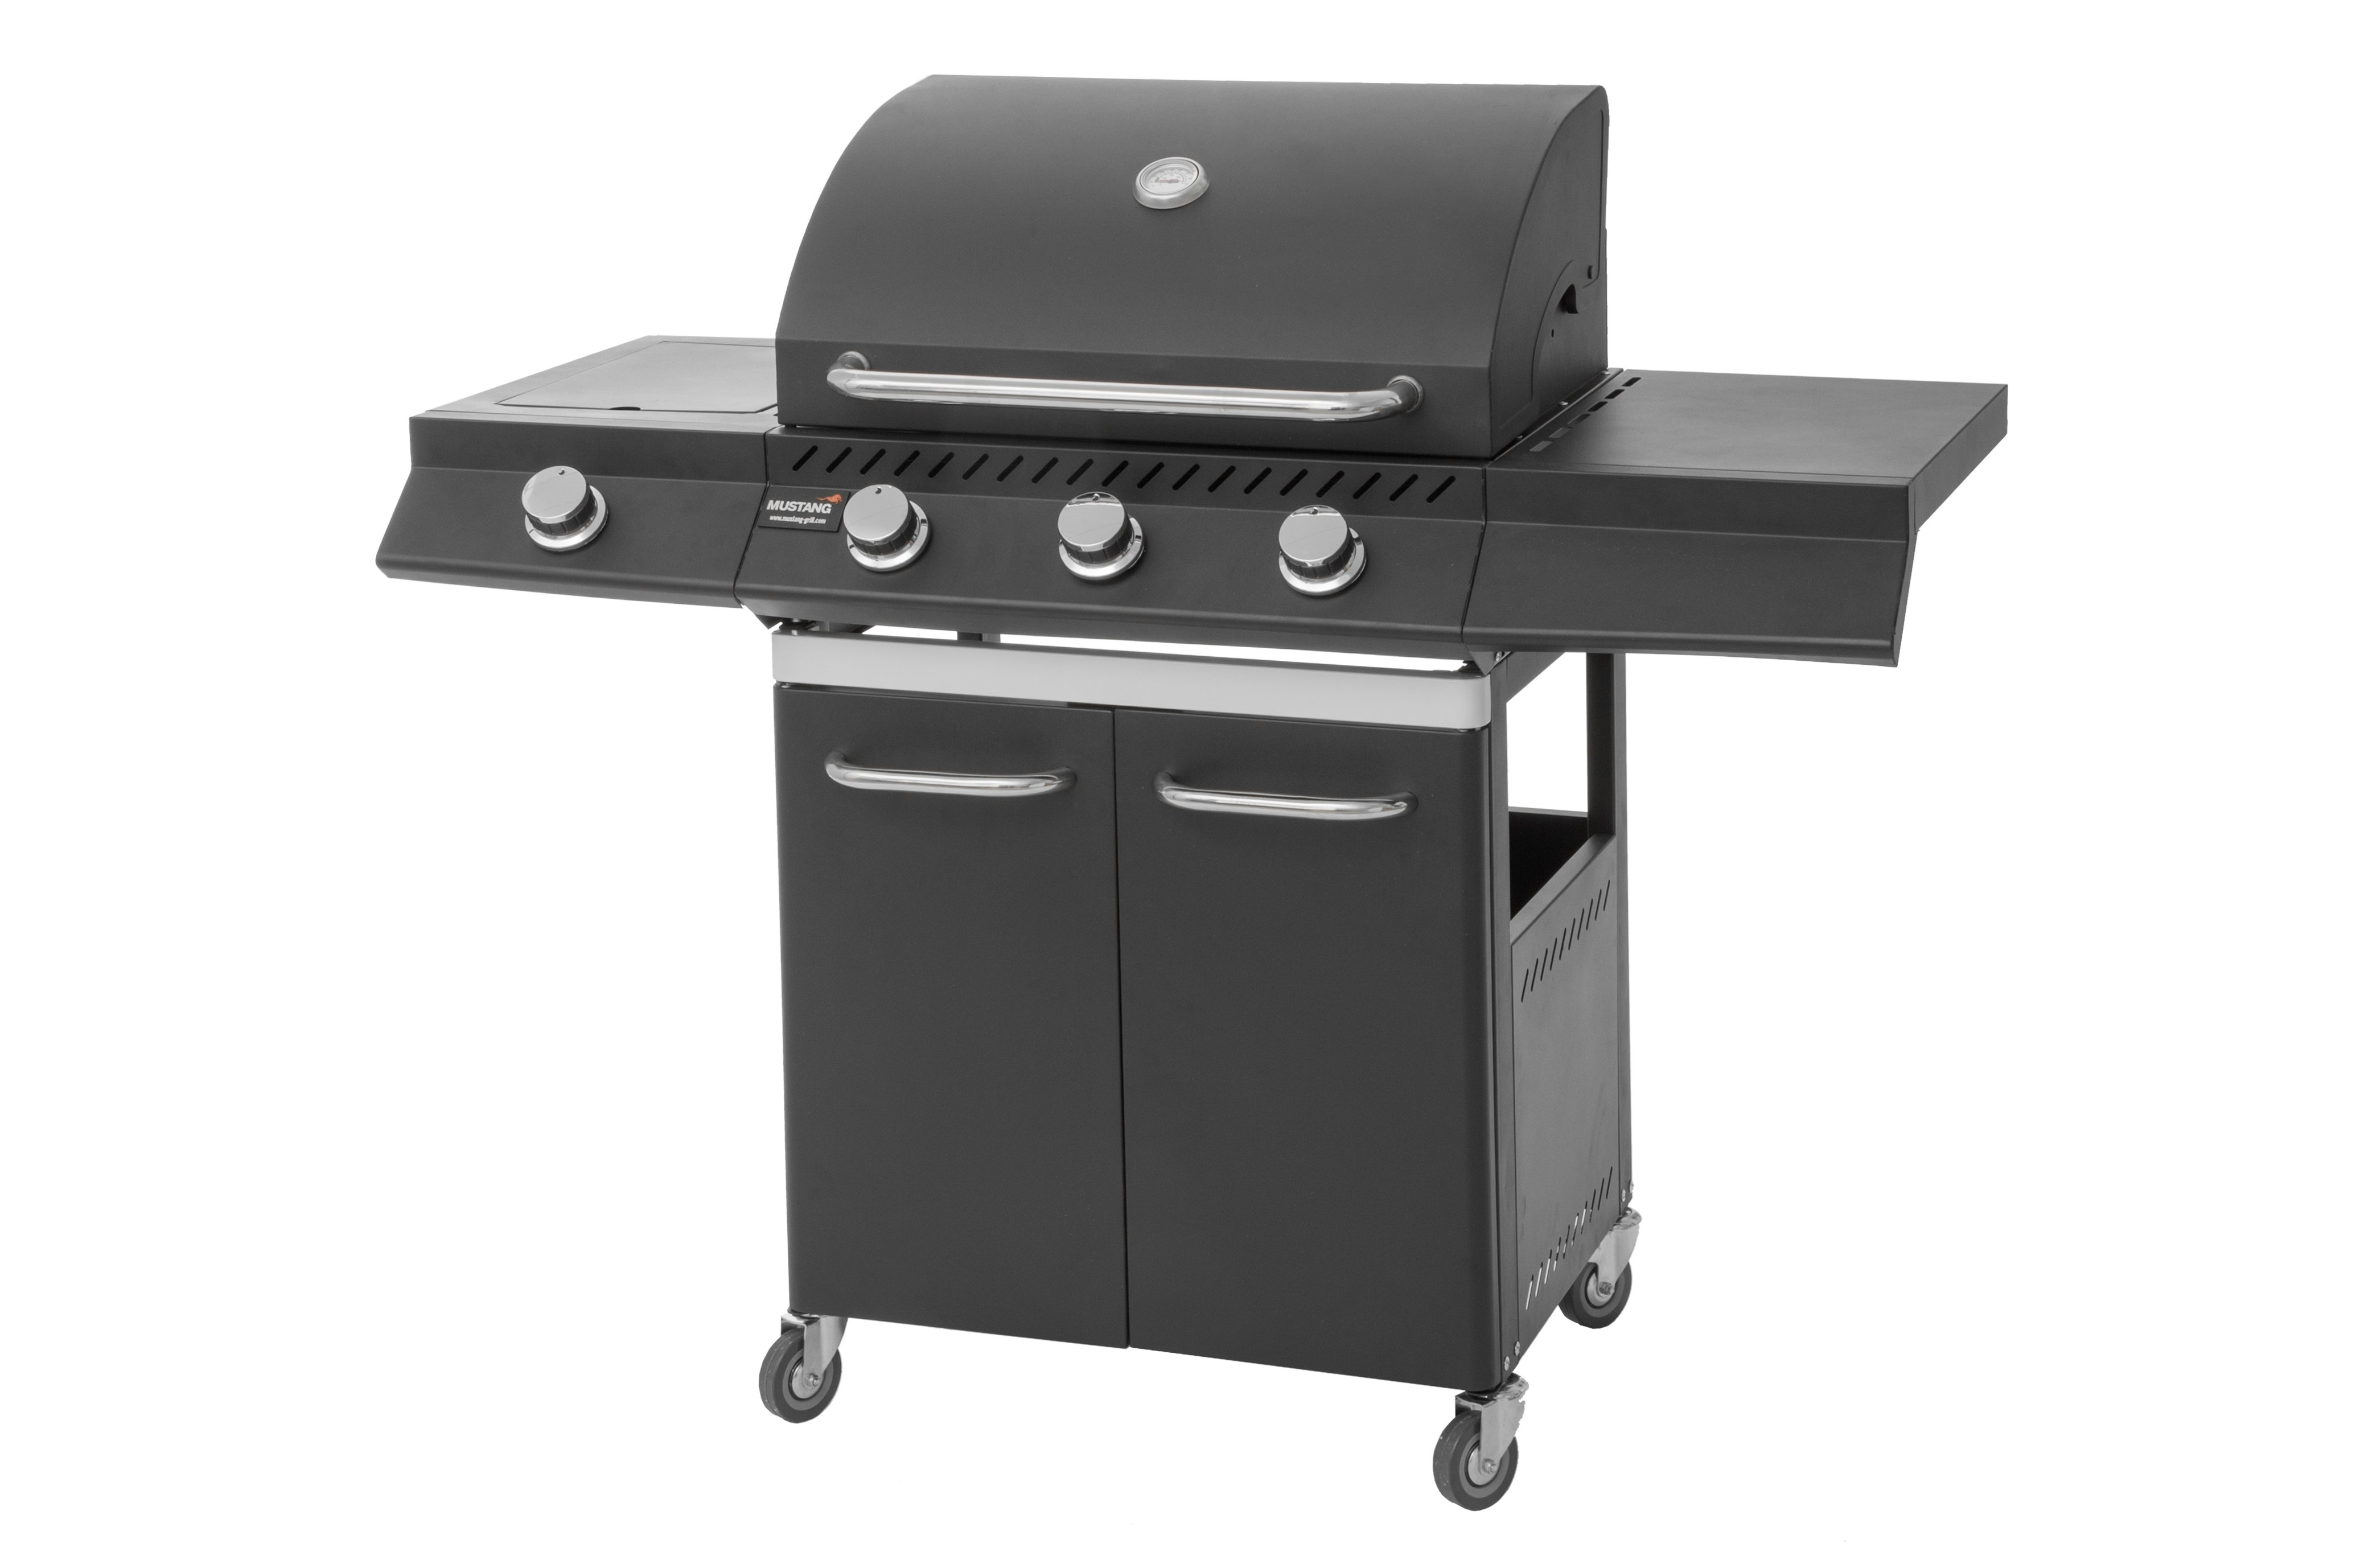 Gaasigrill Mustang Knoxville 3+1